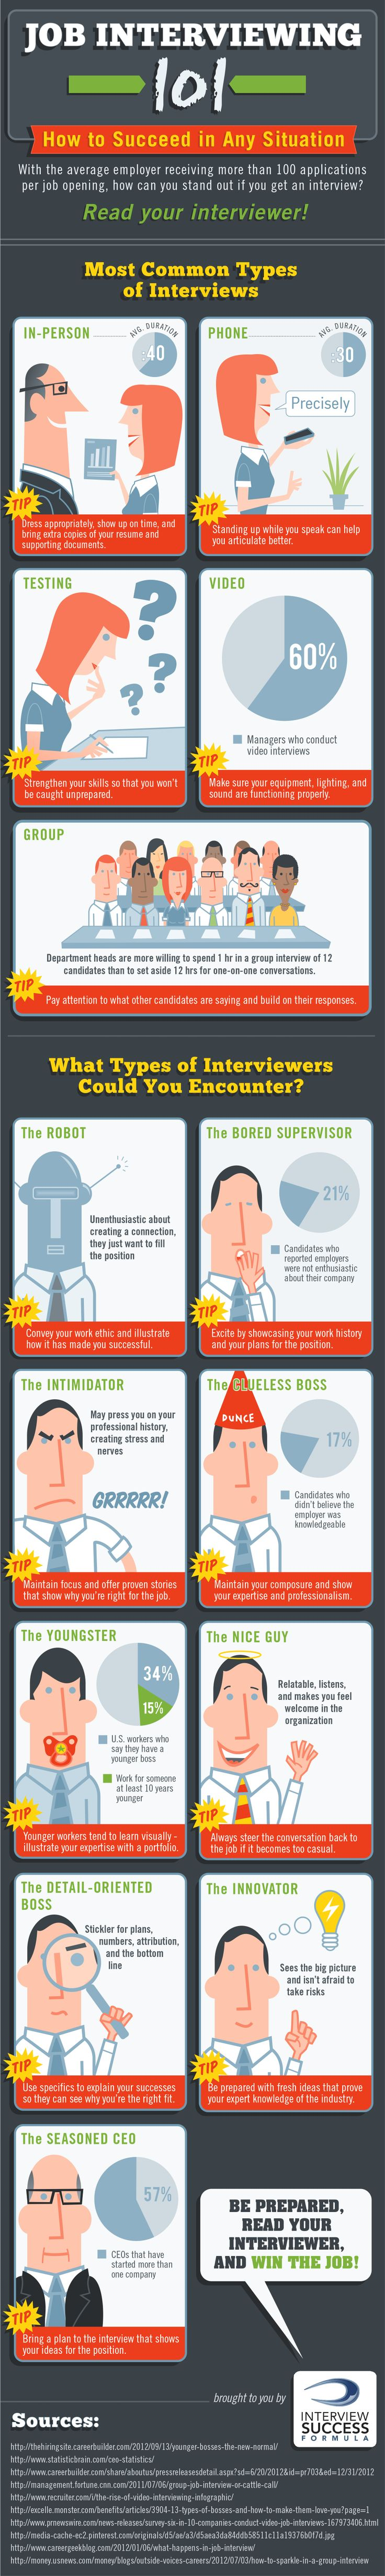 17 best images about interview tips tricks job interviewing this infographic outlines the different types of interviews and the various versions of interviewers that come a long them